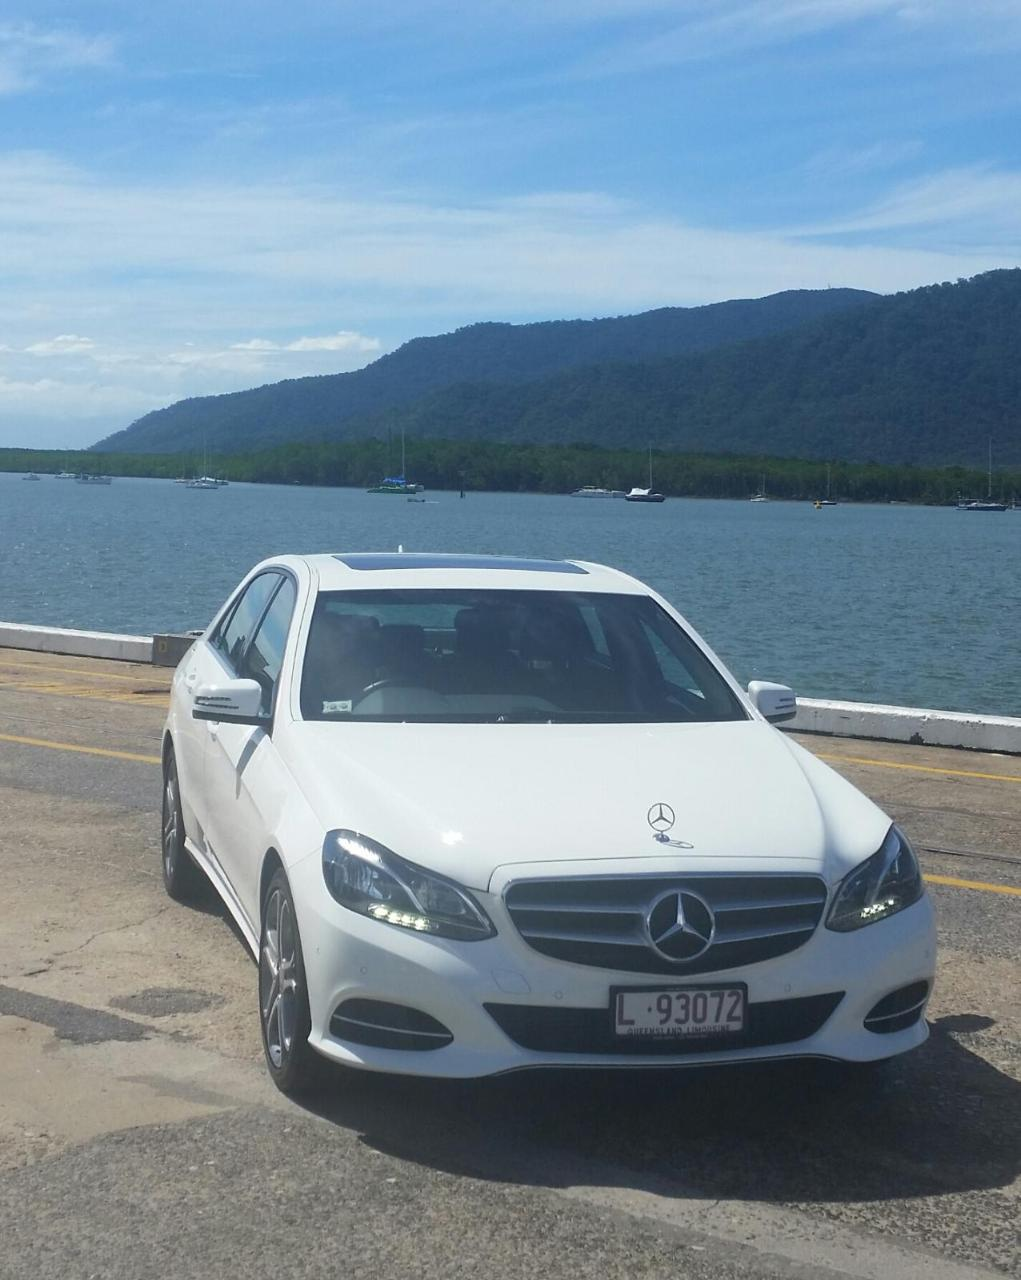 Port Douglas to Cairns Airport - Luxury Sedan